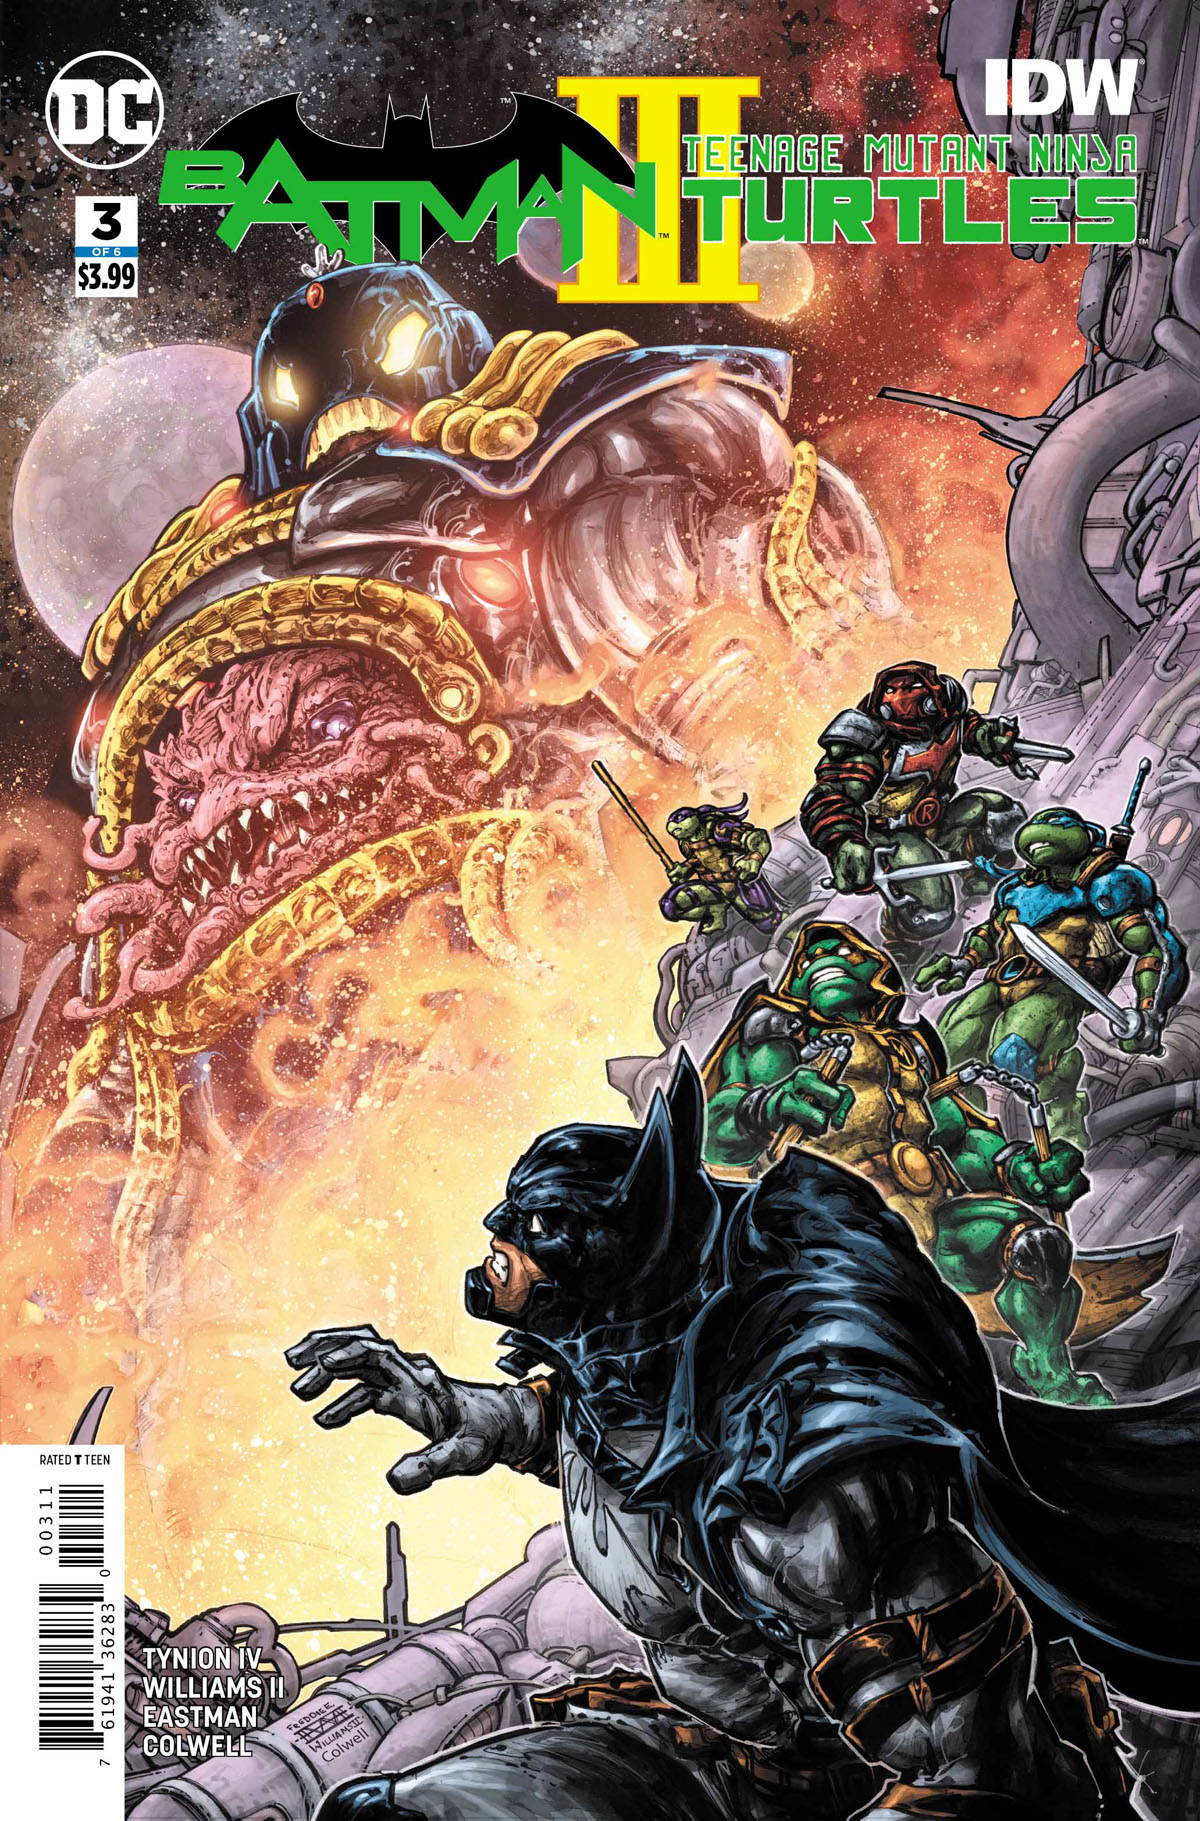 Batman/Teenage Mutant Ninja Turtles III #3 cover